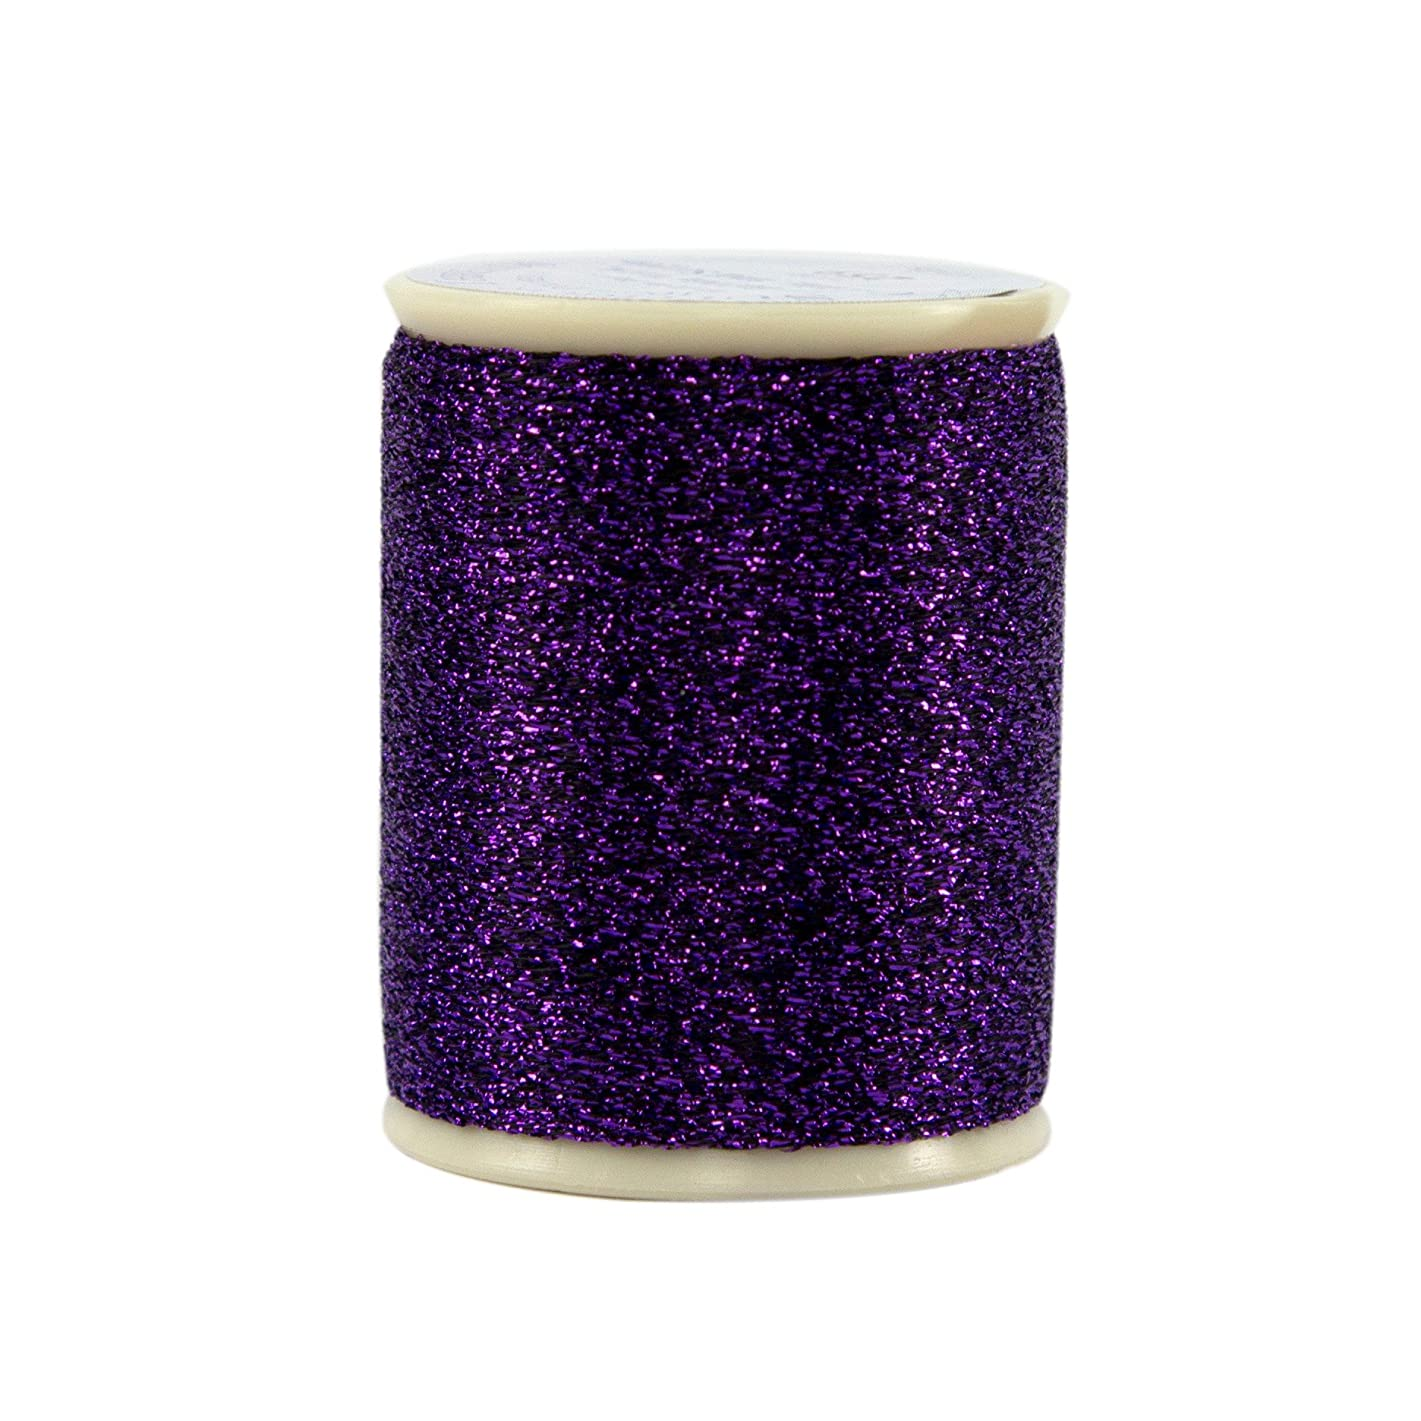 Superior Threads 120012XX259 Razzle Dazzle Crown Jewels 8W Polyester Metallic Thread, 110 yd